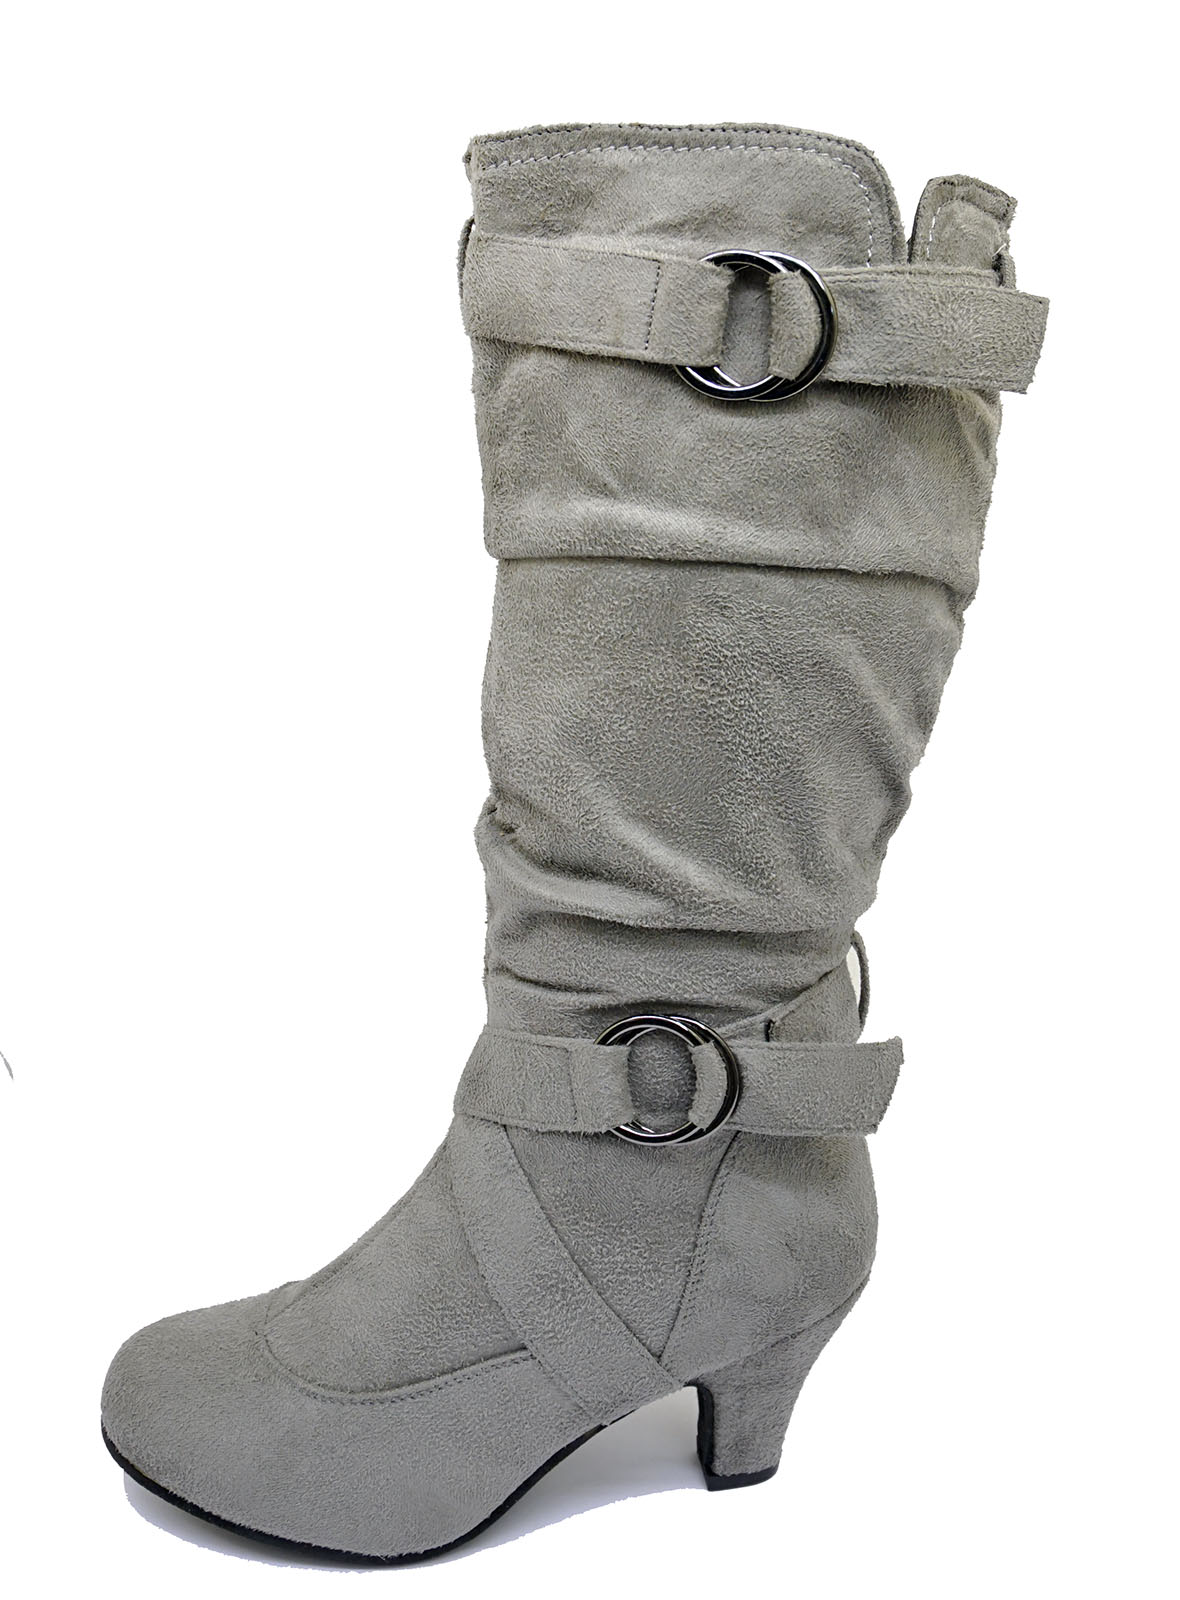 LADIES-GREY-ZIP-UP-BIKER-SLOUCH-RUCHED-TALL-KNEE-CALF-LOW-HEEL-BOOTS-SHOES-4-10 thumbnail 18